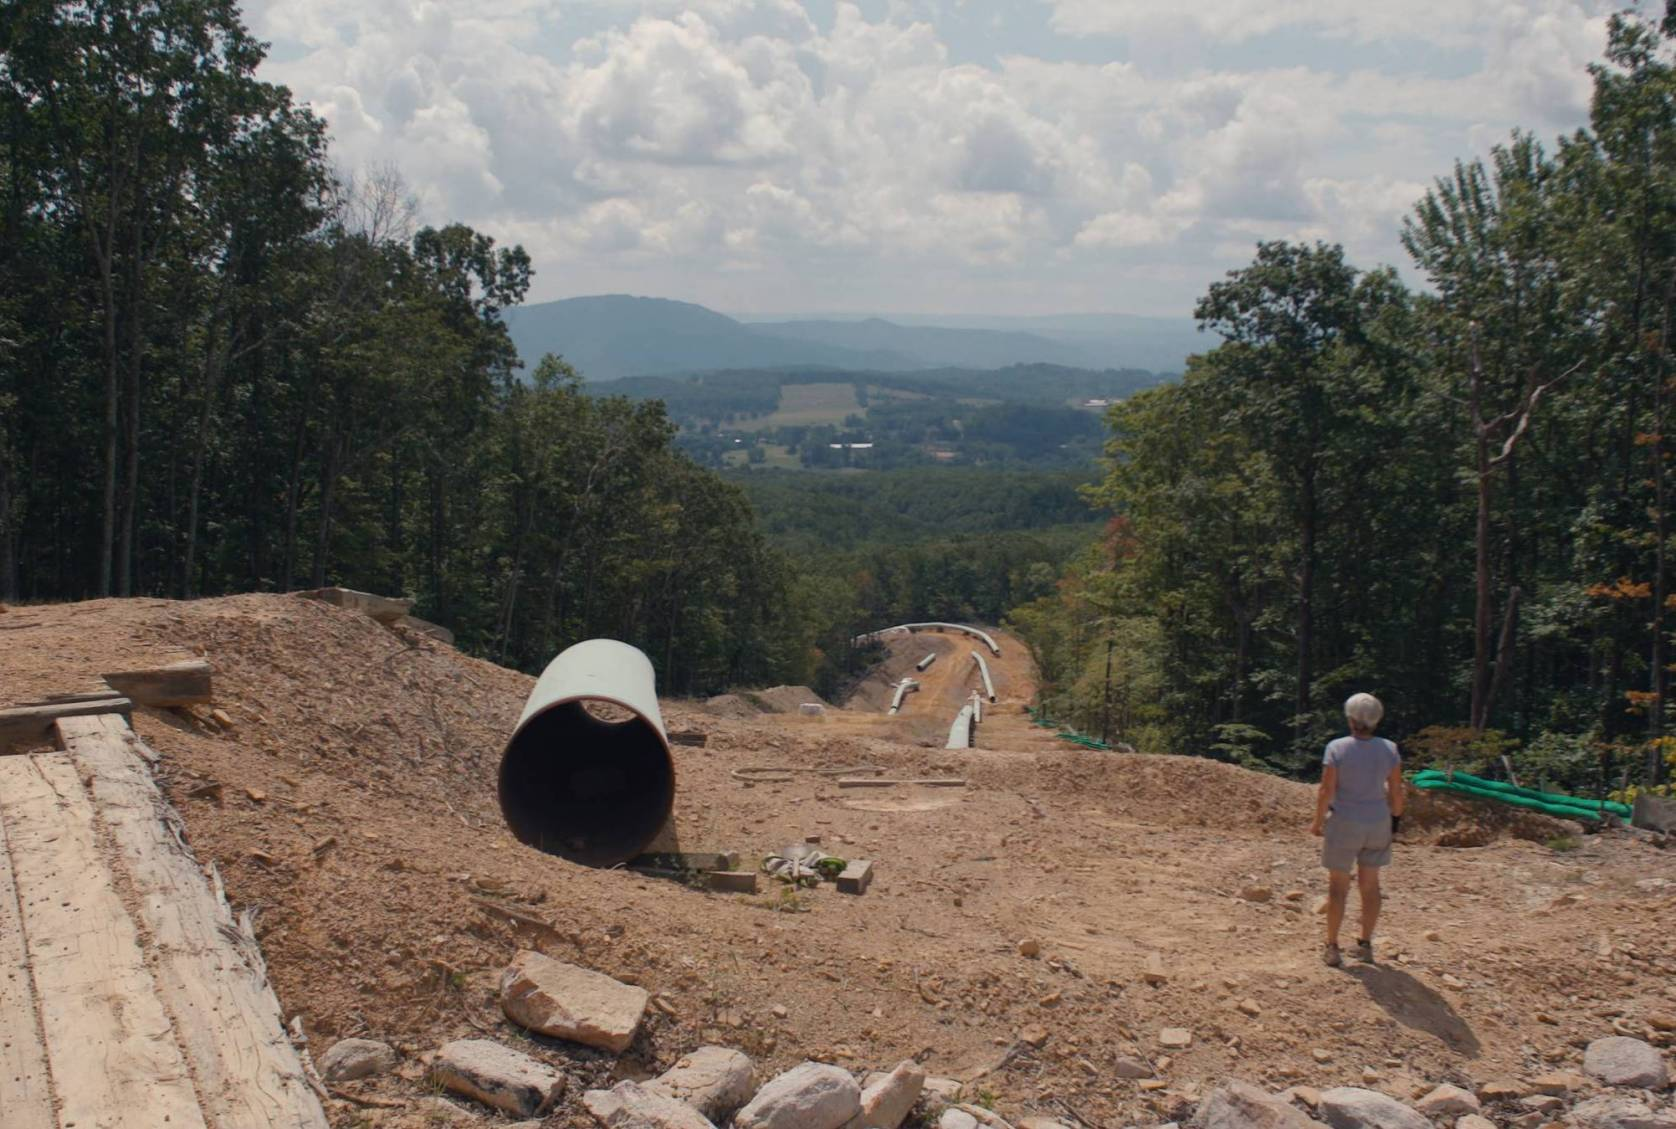 a person looking down a steep hill cluttered with segments of a pipeline